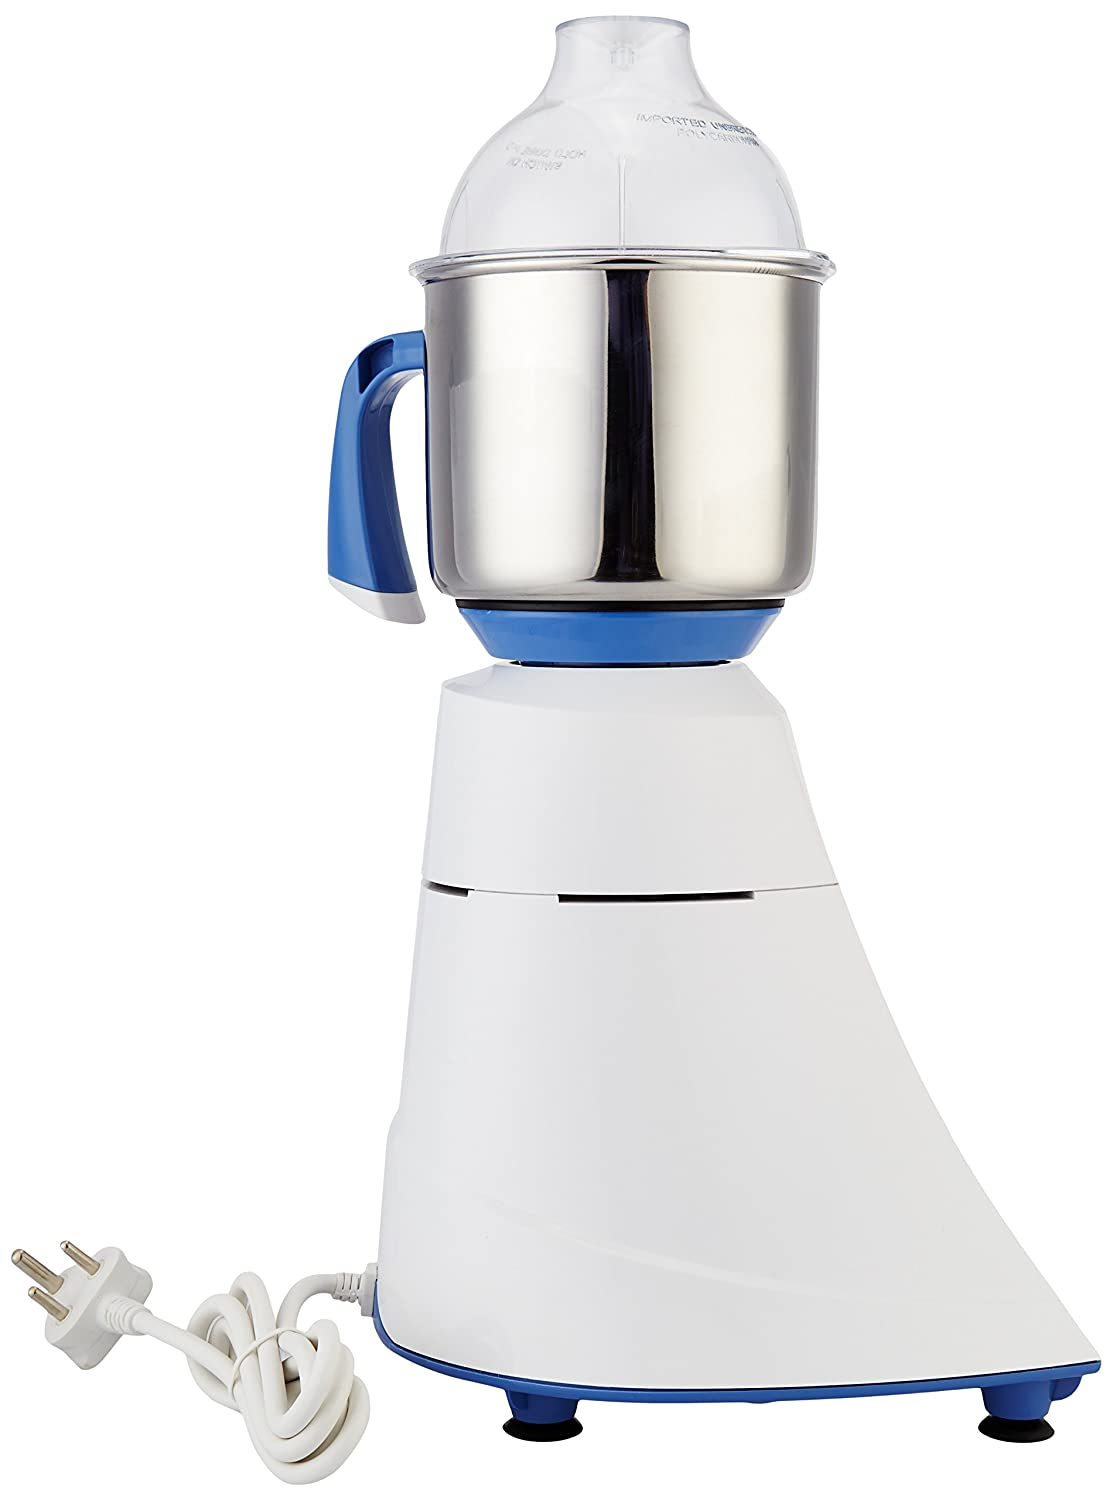 Preethi Blue Leaf Diamond 750-Watt Mixer Grinder, 3-Piece, Blue/White